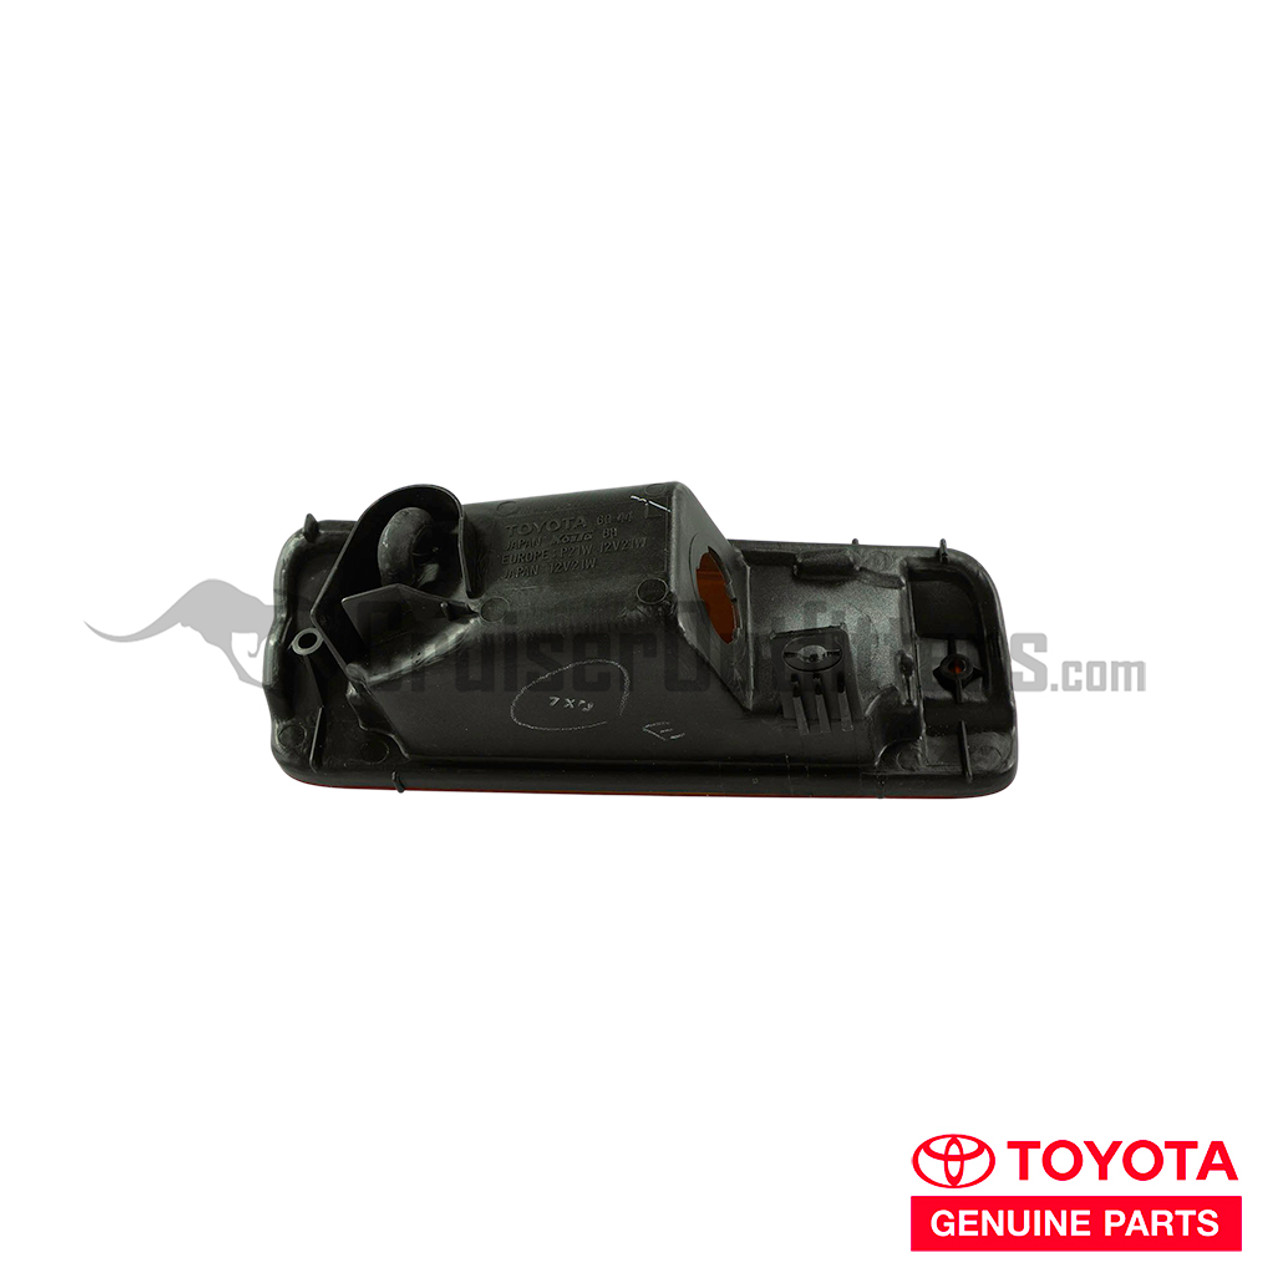 Front Turn Signal Assembly - OEM Toyota - Fits 90+ LJ7x Left Hand (LENS60272)